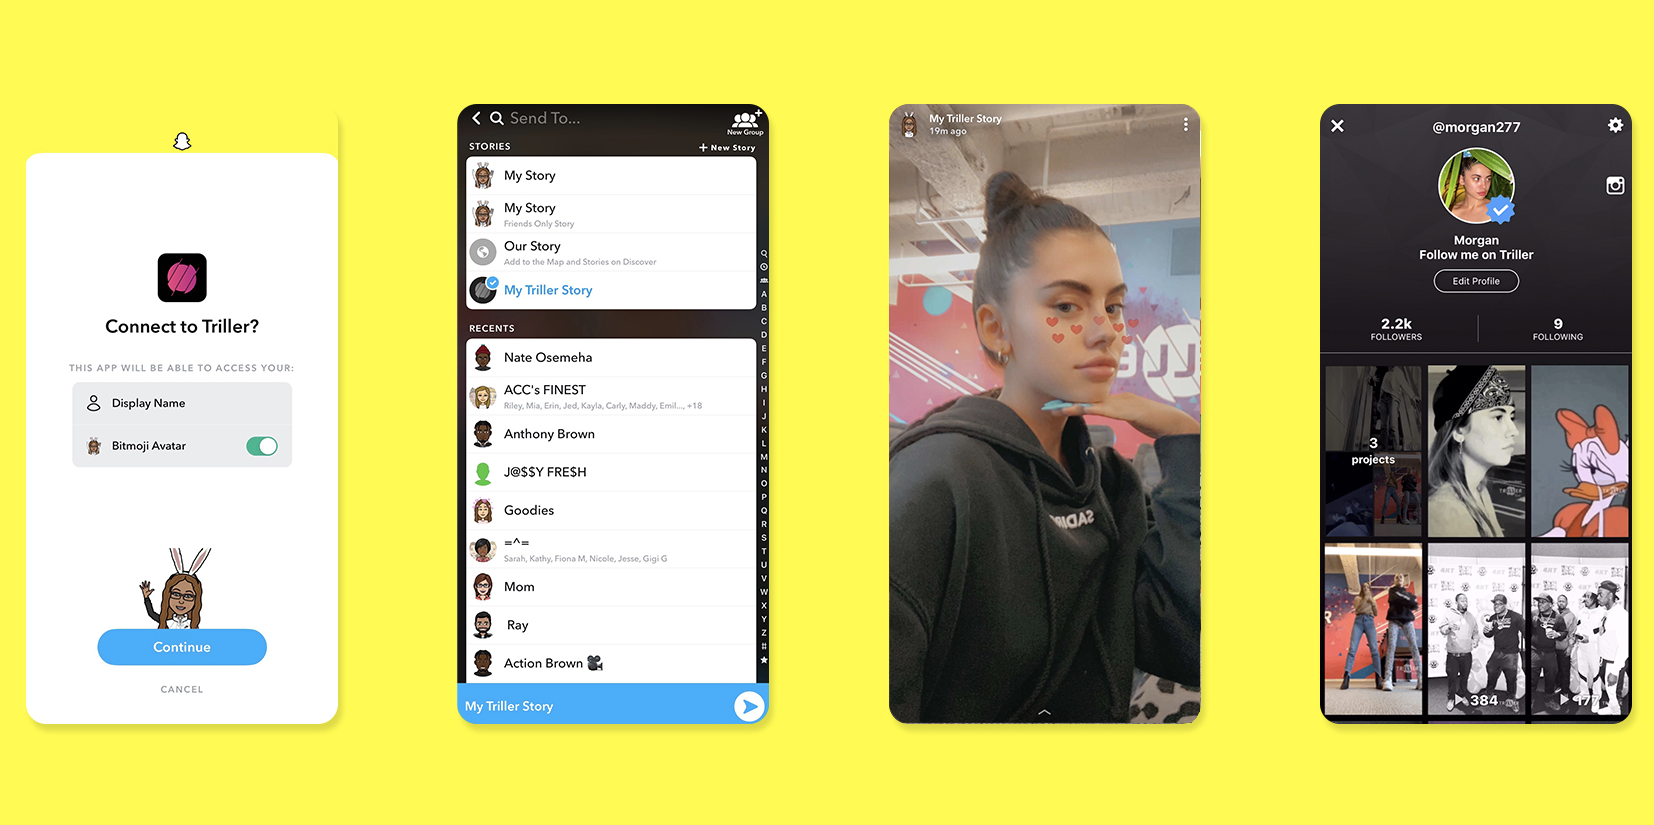 Snapchat: Best Augmented Reality Apps for Android 2021